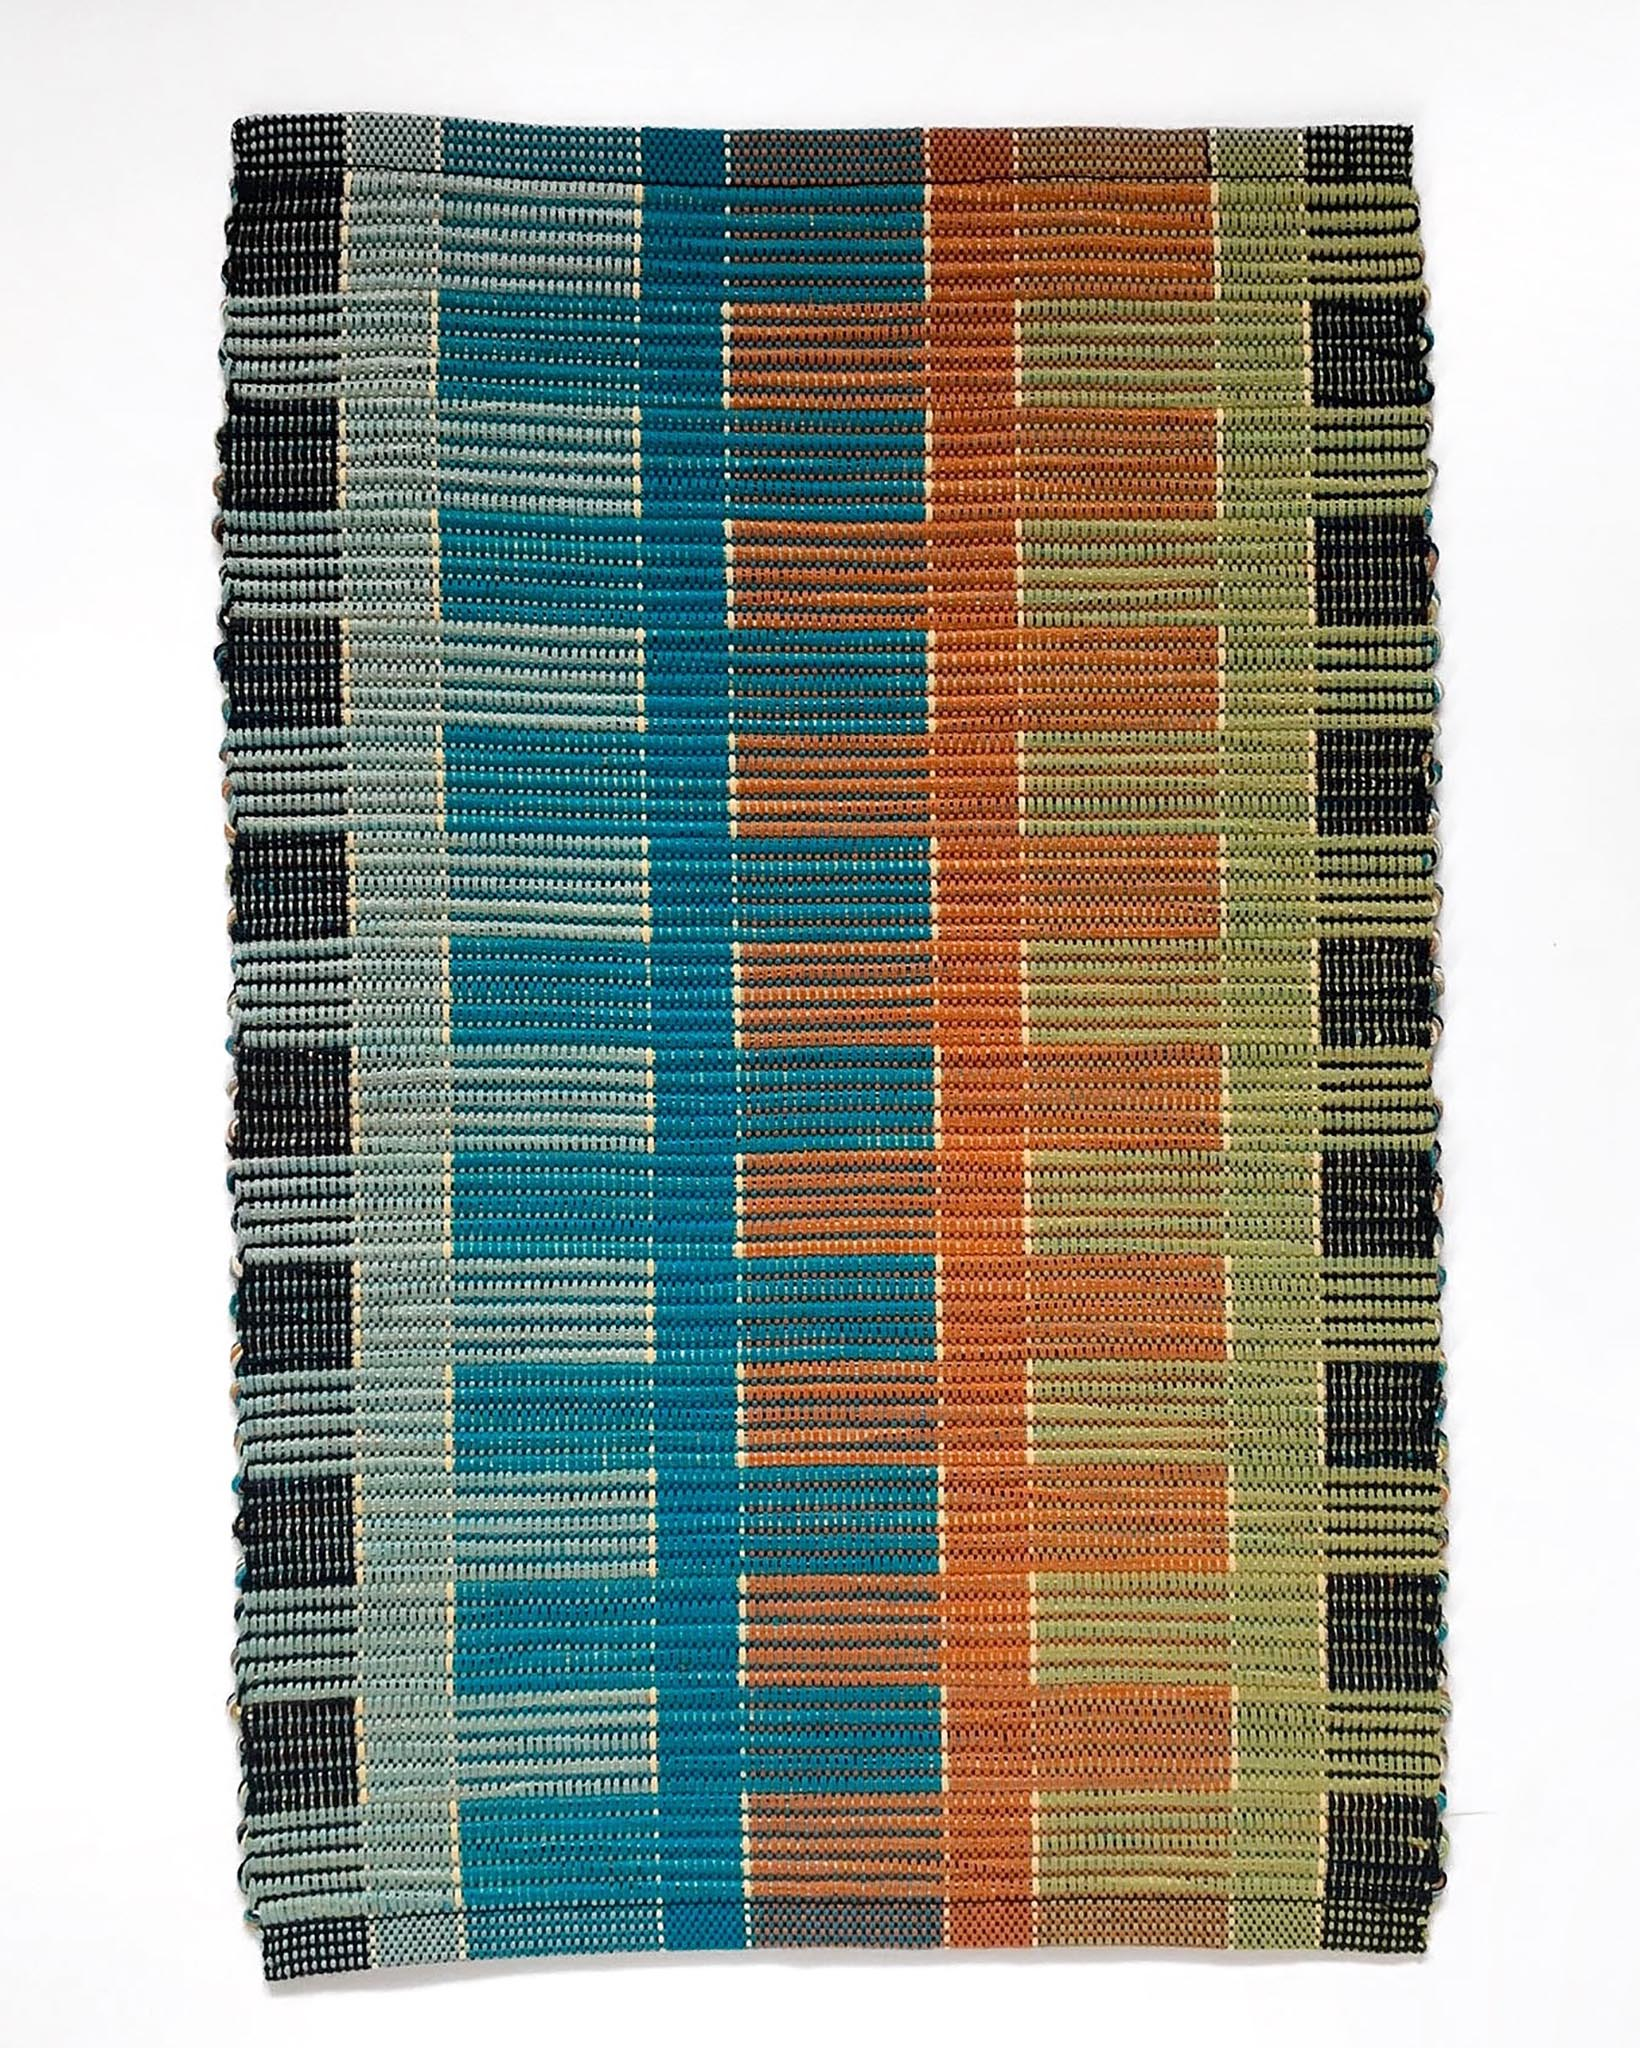 Cotton Rep Weave Placemats Weaving Pattern